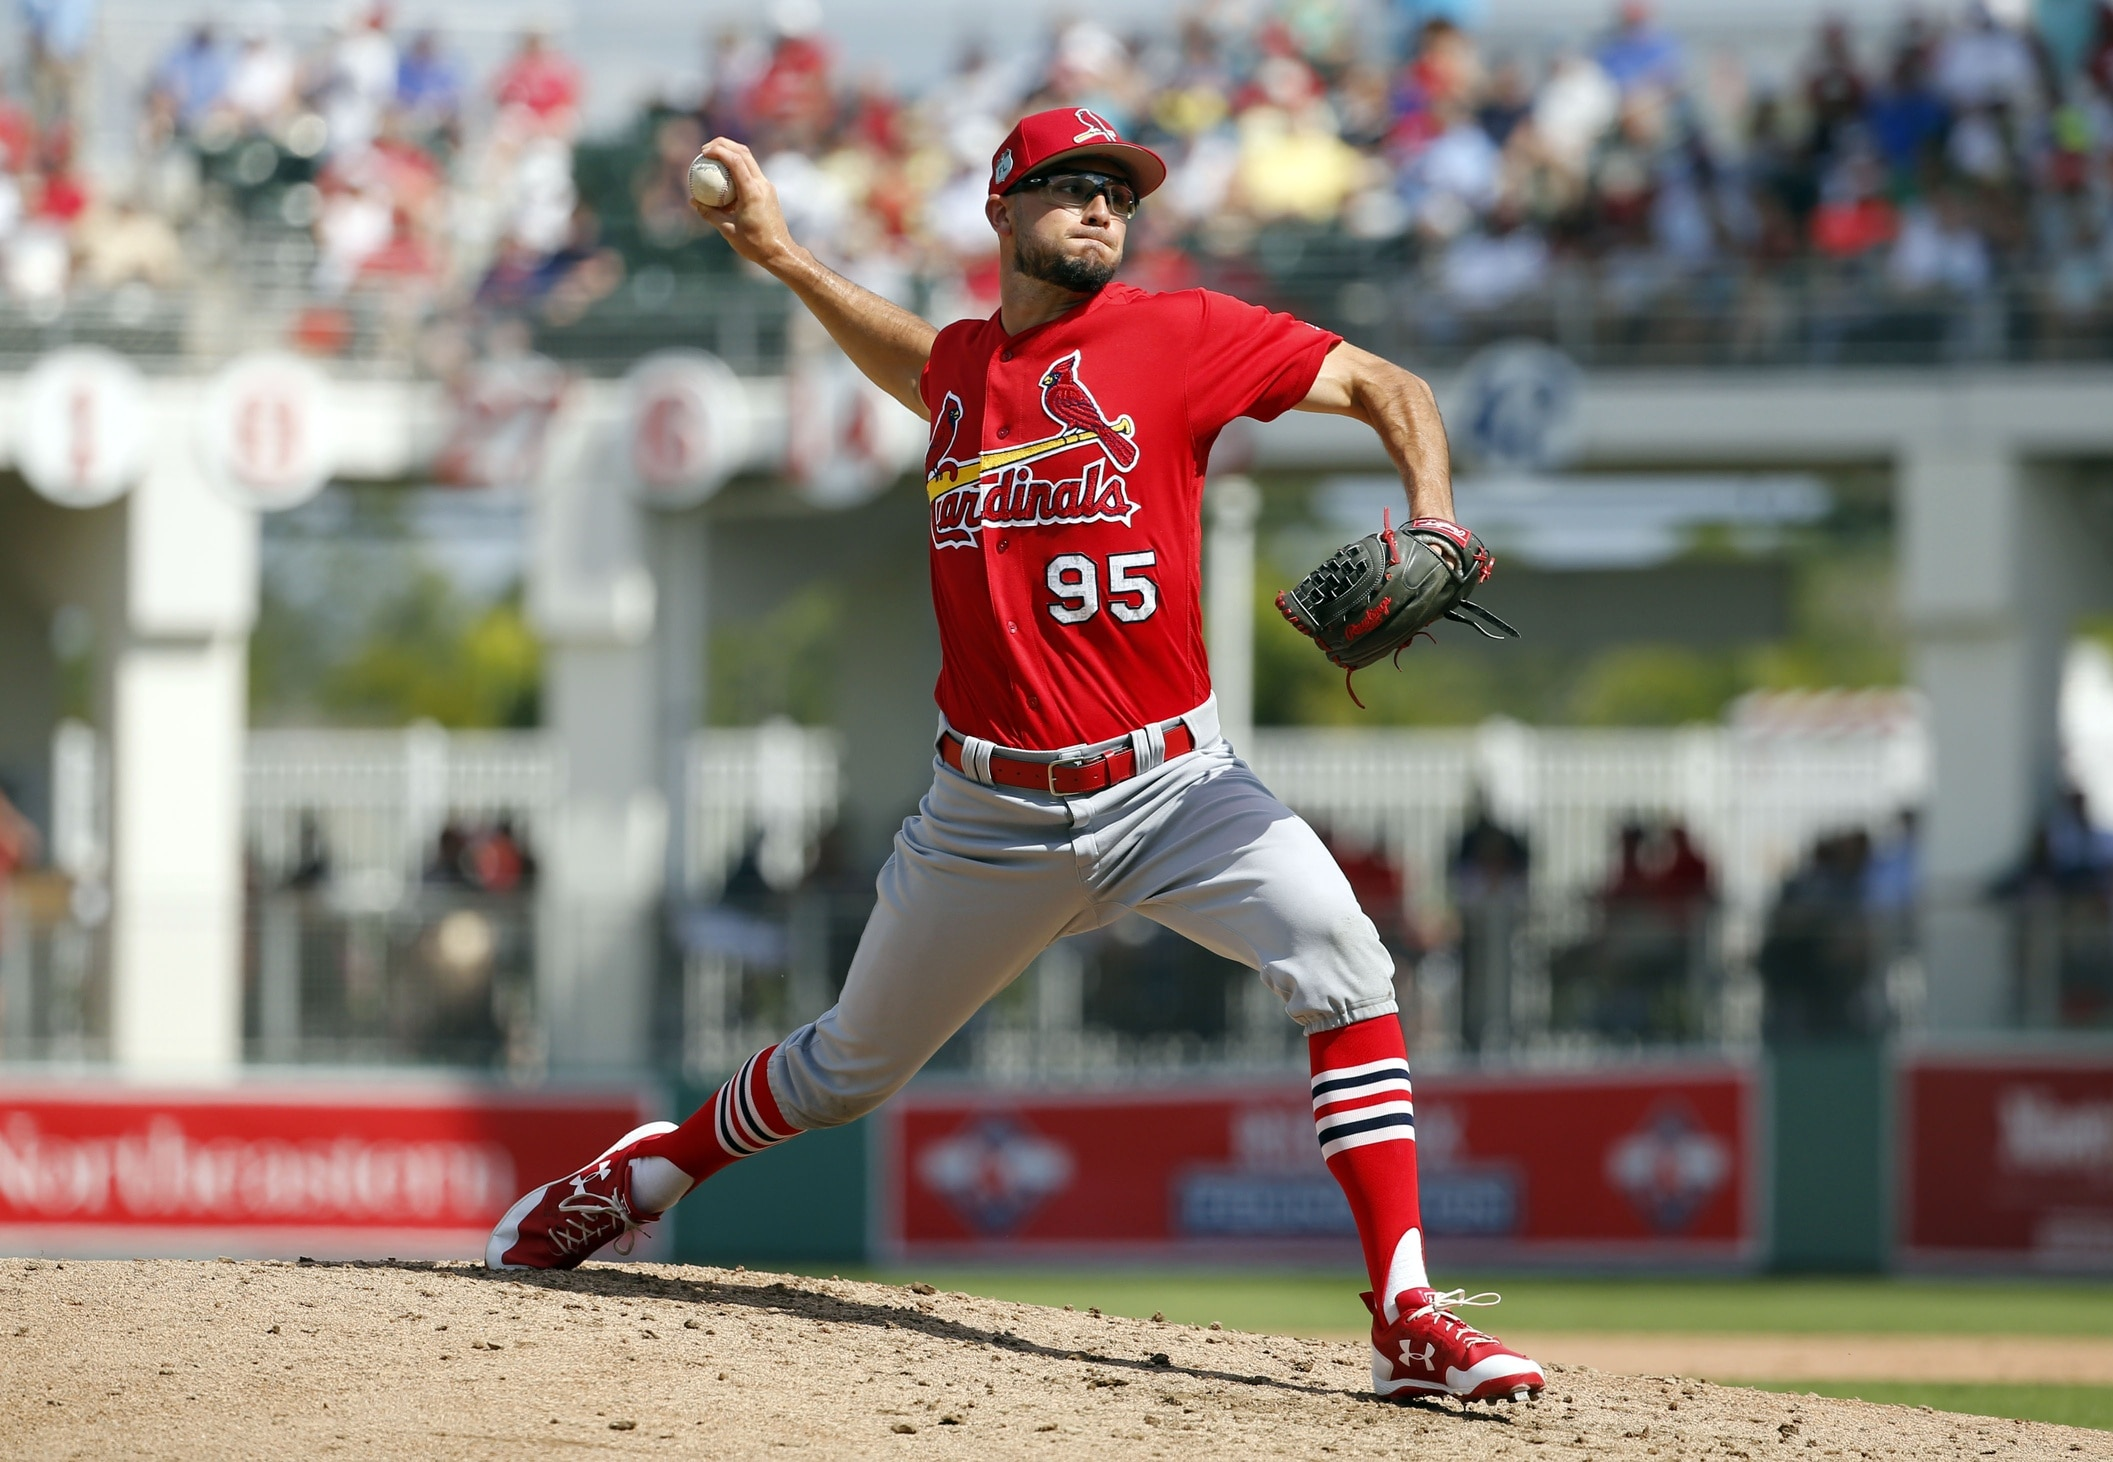 Feb 27, 2017; Fort Myers, FL, USA; St. Louis Cardinals pitcher Daniel Poncedeleon (95) throws a pitch during the fourth inning against the Boston Red Sox at JetBlue Park. Mandatory Credit: Kim Klement-USA TODAY Sports